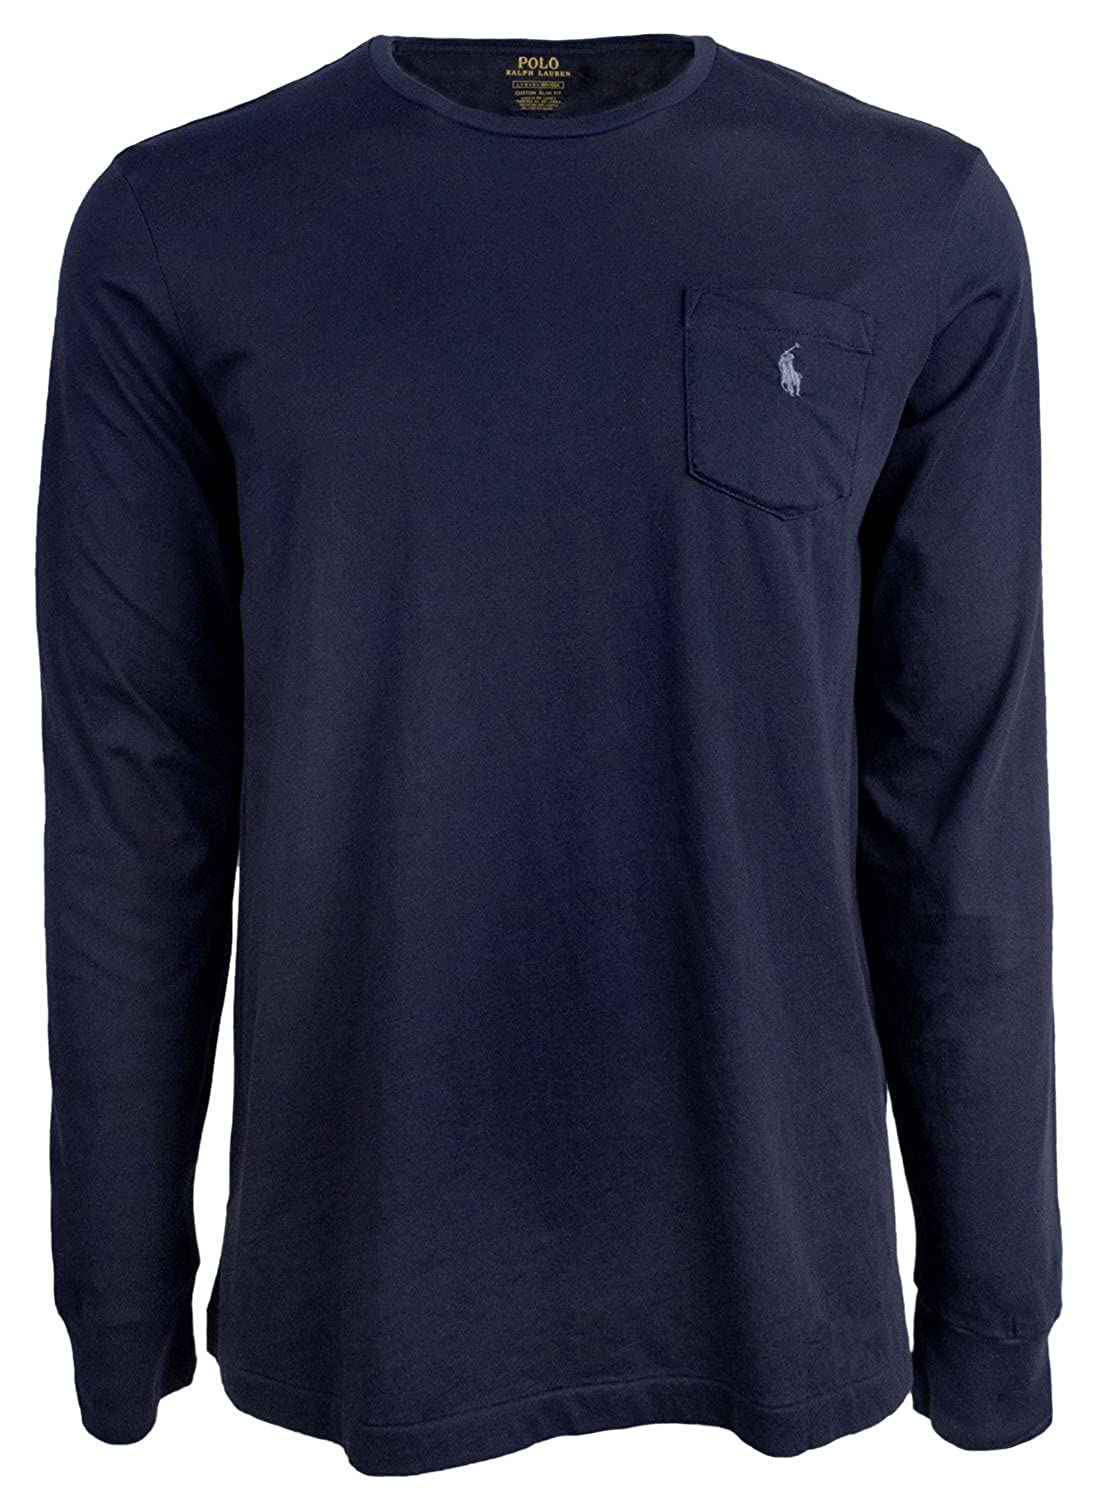 0d70a5e3 RALPH LAUREN Polo Men Long Sleeve Pony Logo T-Shirt with Pocket (Navy, L)  at Amazon Men's Clothing store: